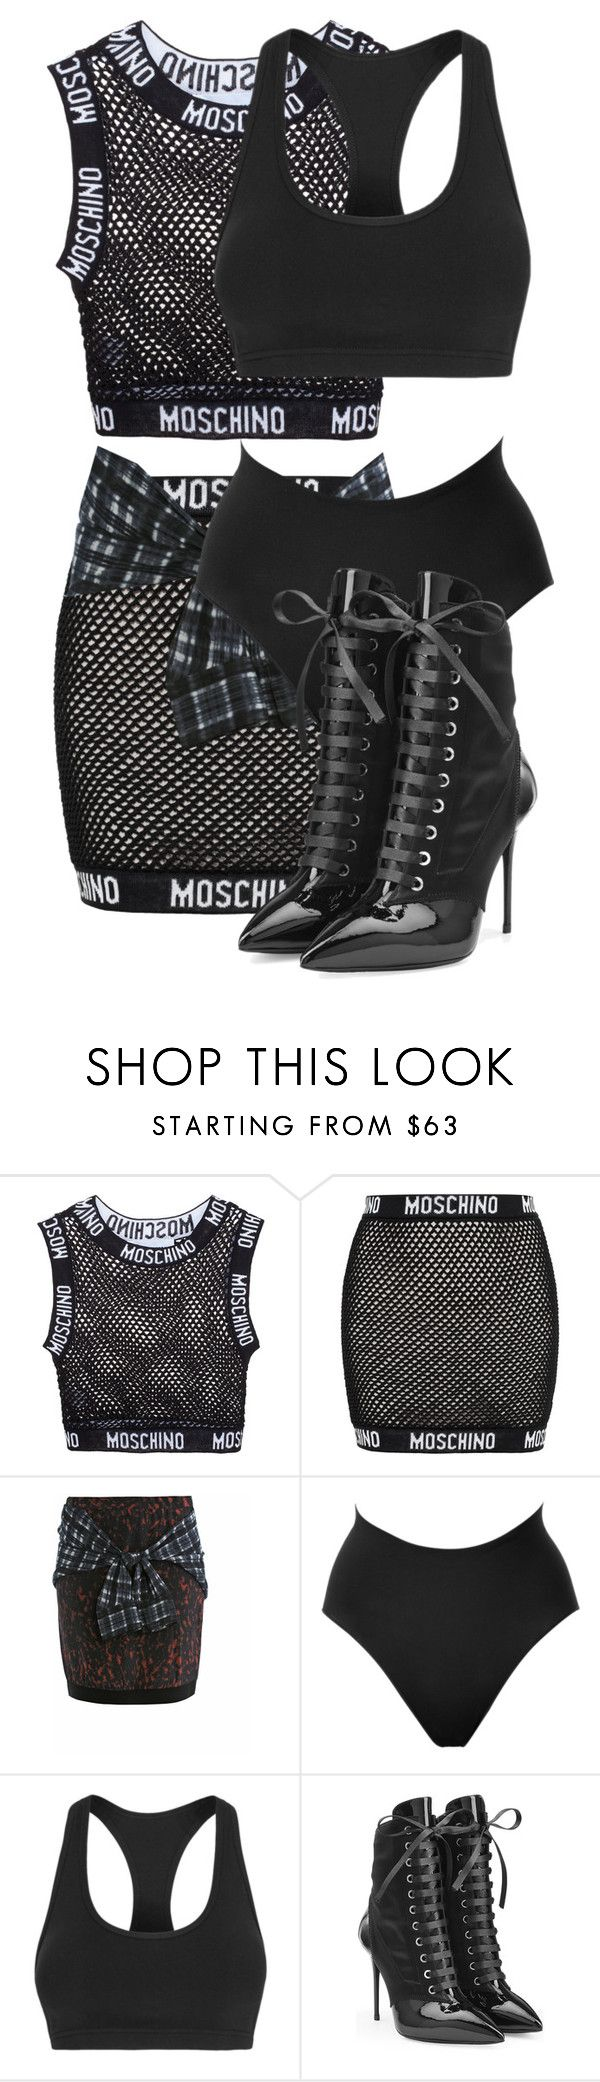 """Untitled #3049"" by xirix on Polyvore featuring Moschino, 3.1 Phillip Lim, SPANX, Lorna Jane and Giuseppe Zanotti."